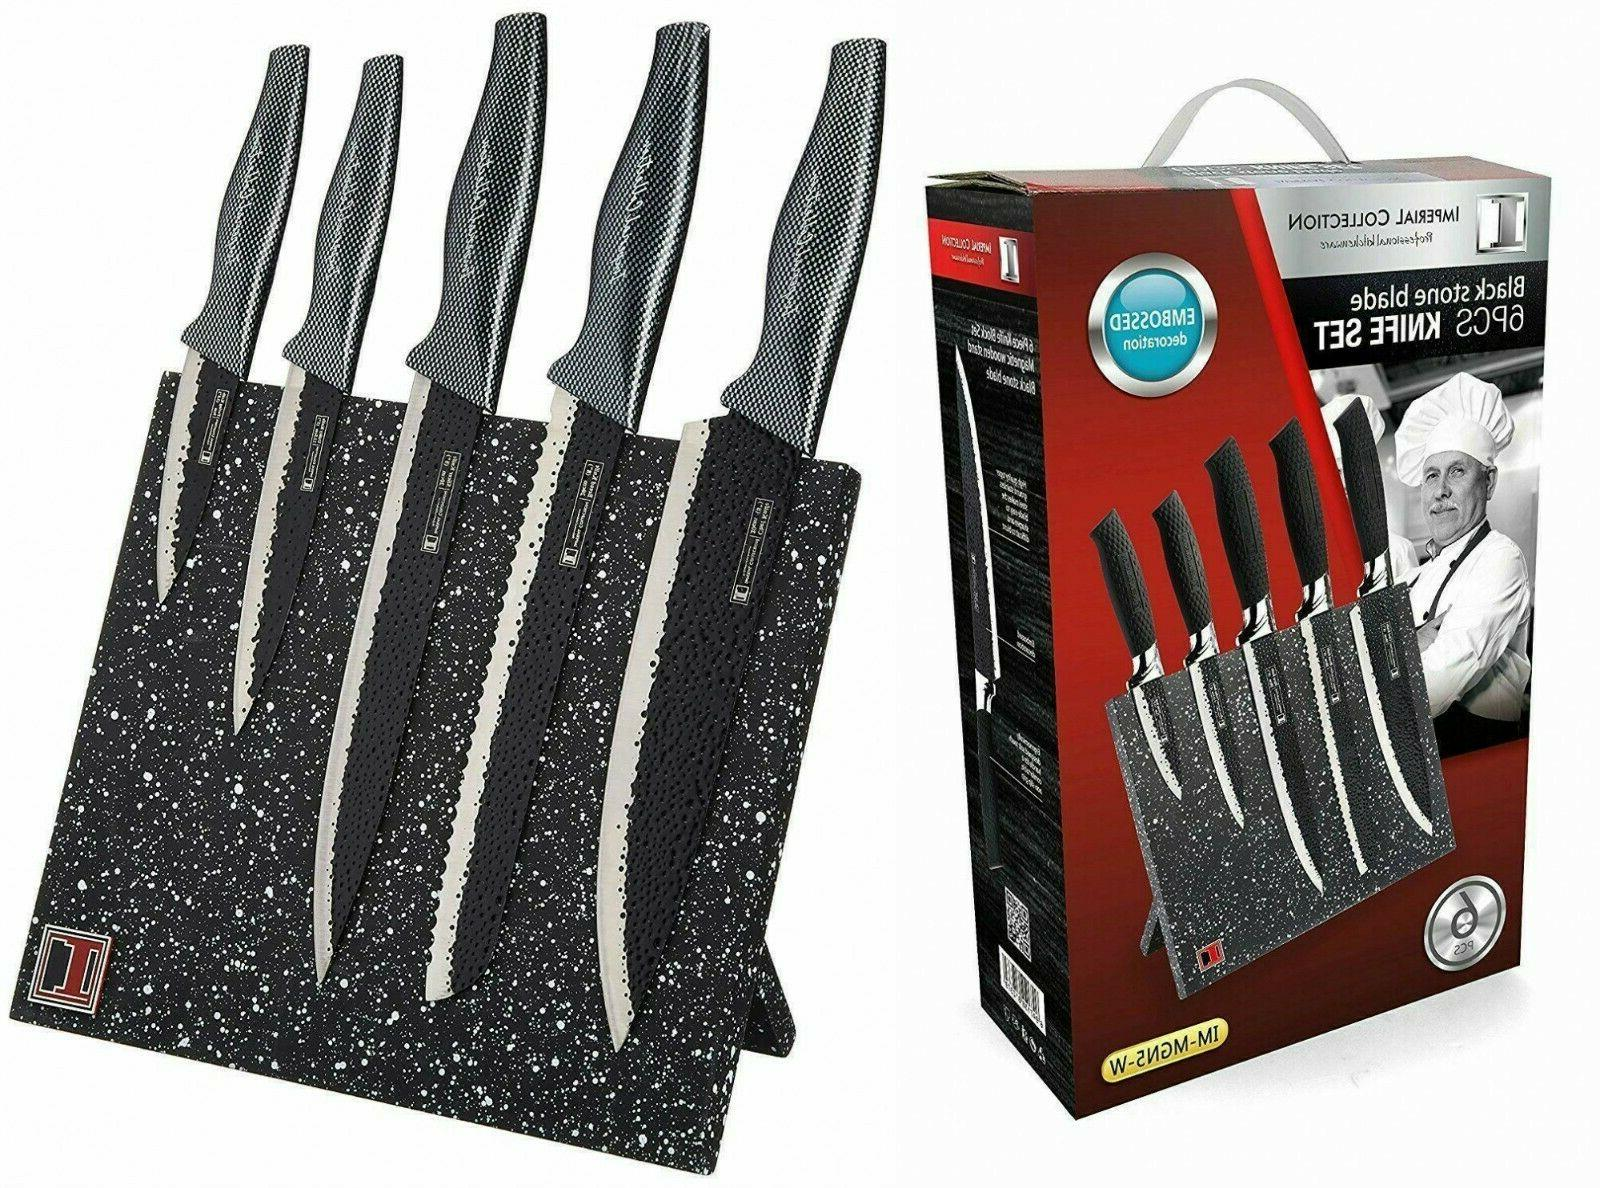 Imperial Collection Non Stick Coating Kitchen Knife Set w Ma